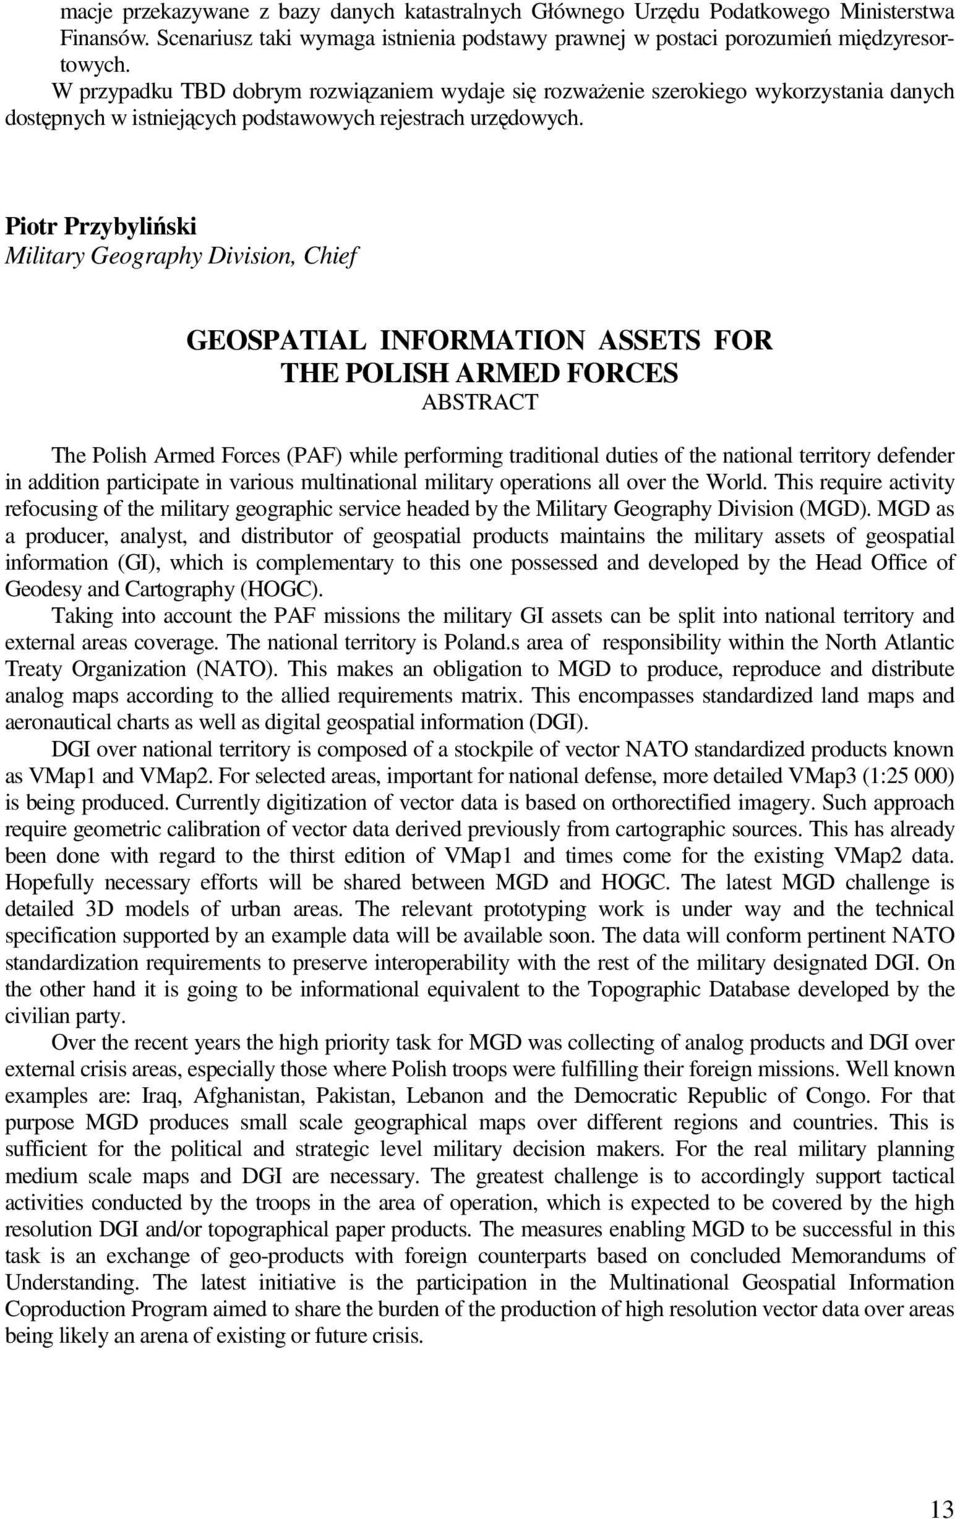 Piotr Przybyliński Military Geography Division, Chief GEOSPATIAL INFORMATION ASSETS FOR THE POLISH ARMED FORCES ABSTRACT The Polish Armed Forces (PAF) while performing traditional duties of the